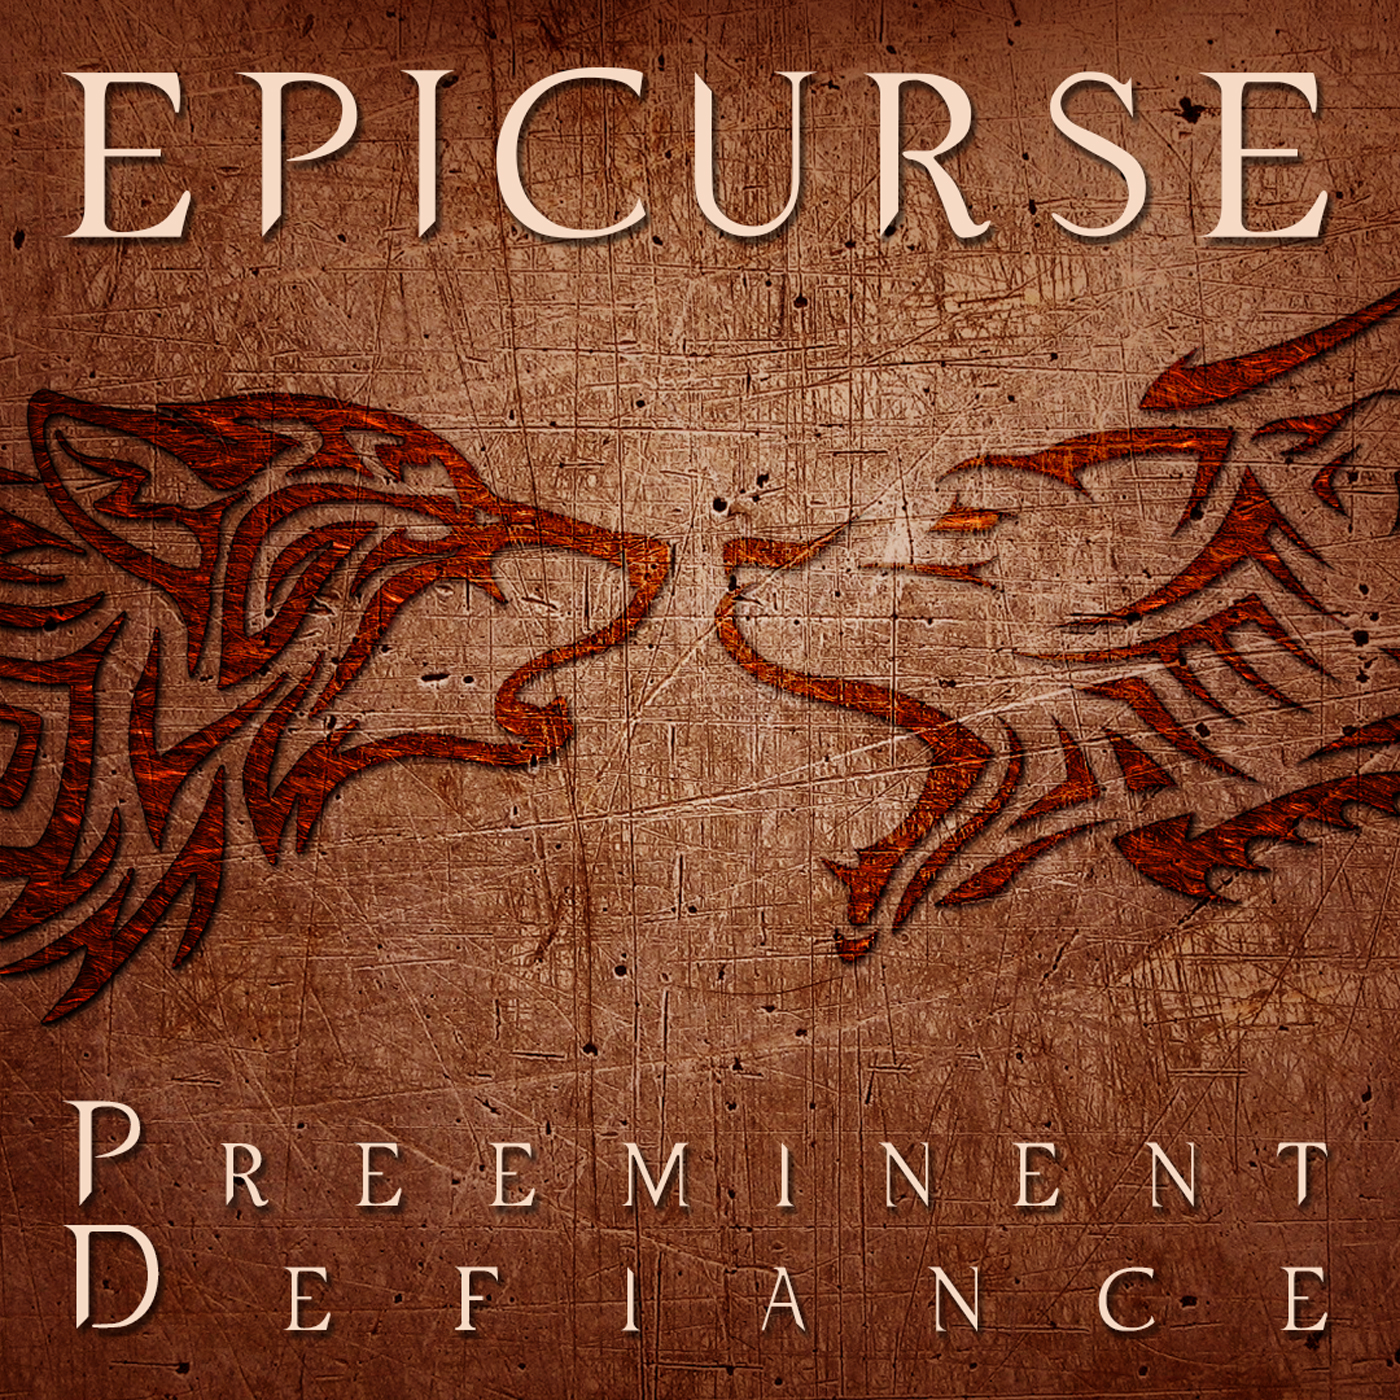 8---Preeminent-Defiance-Cover-1400